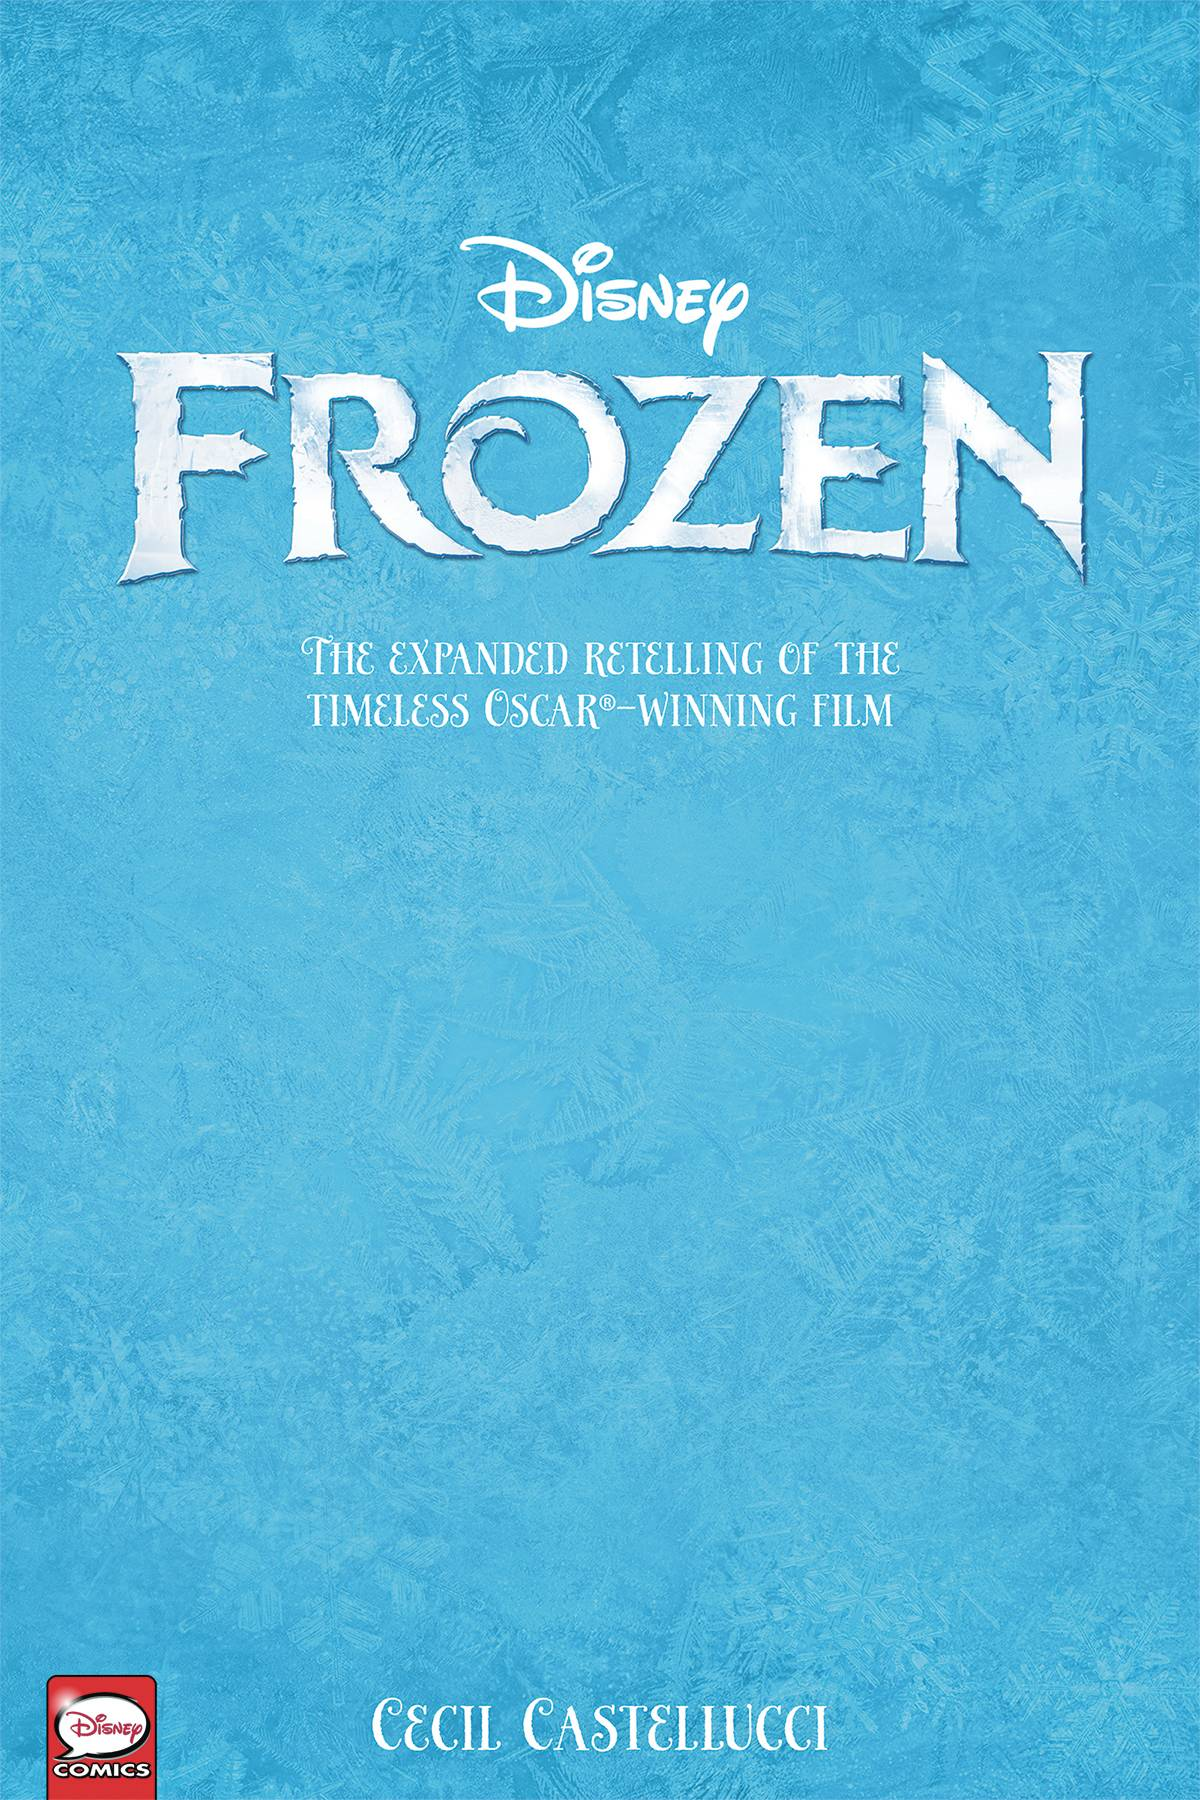 DISNEY FROZEN (YA RETELLING) TP VOL 01 (JUN190368)